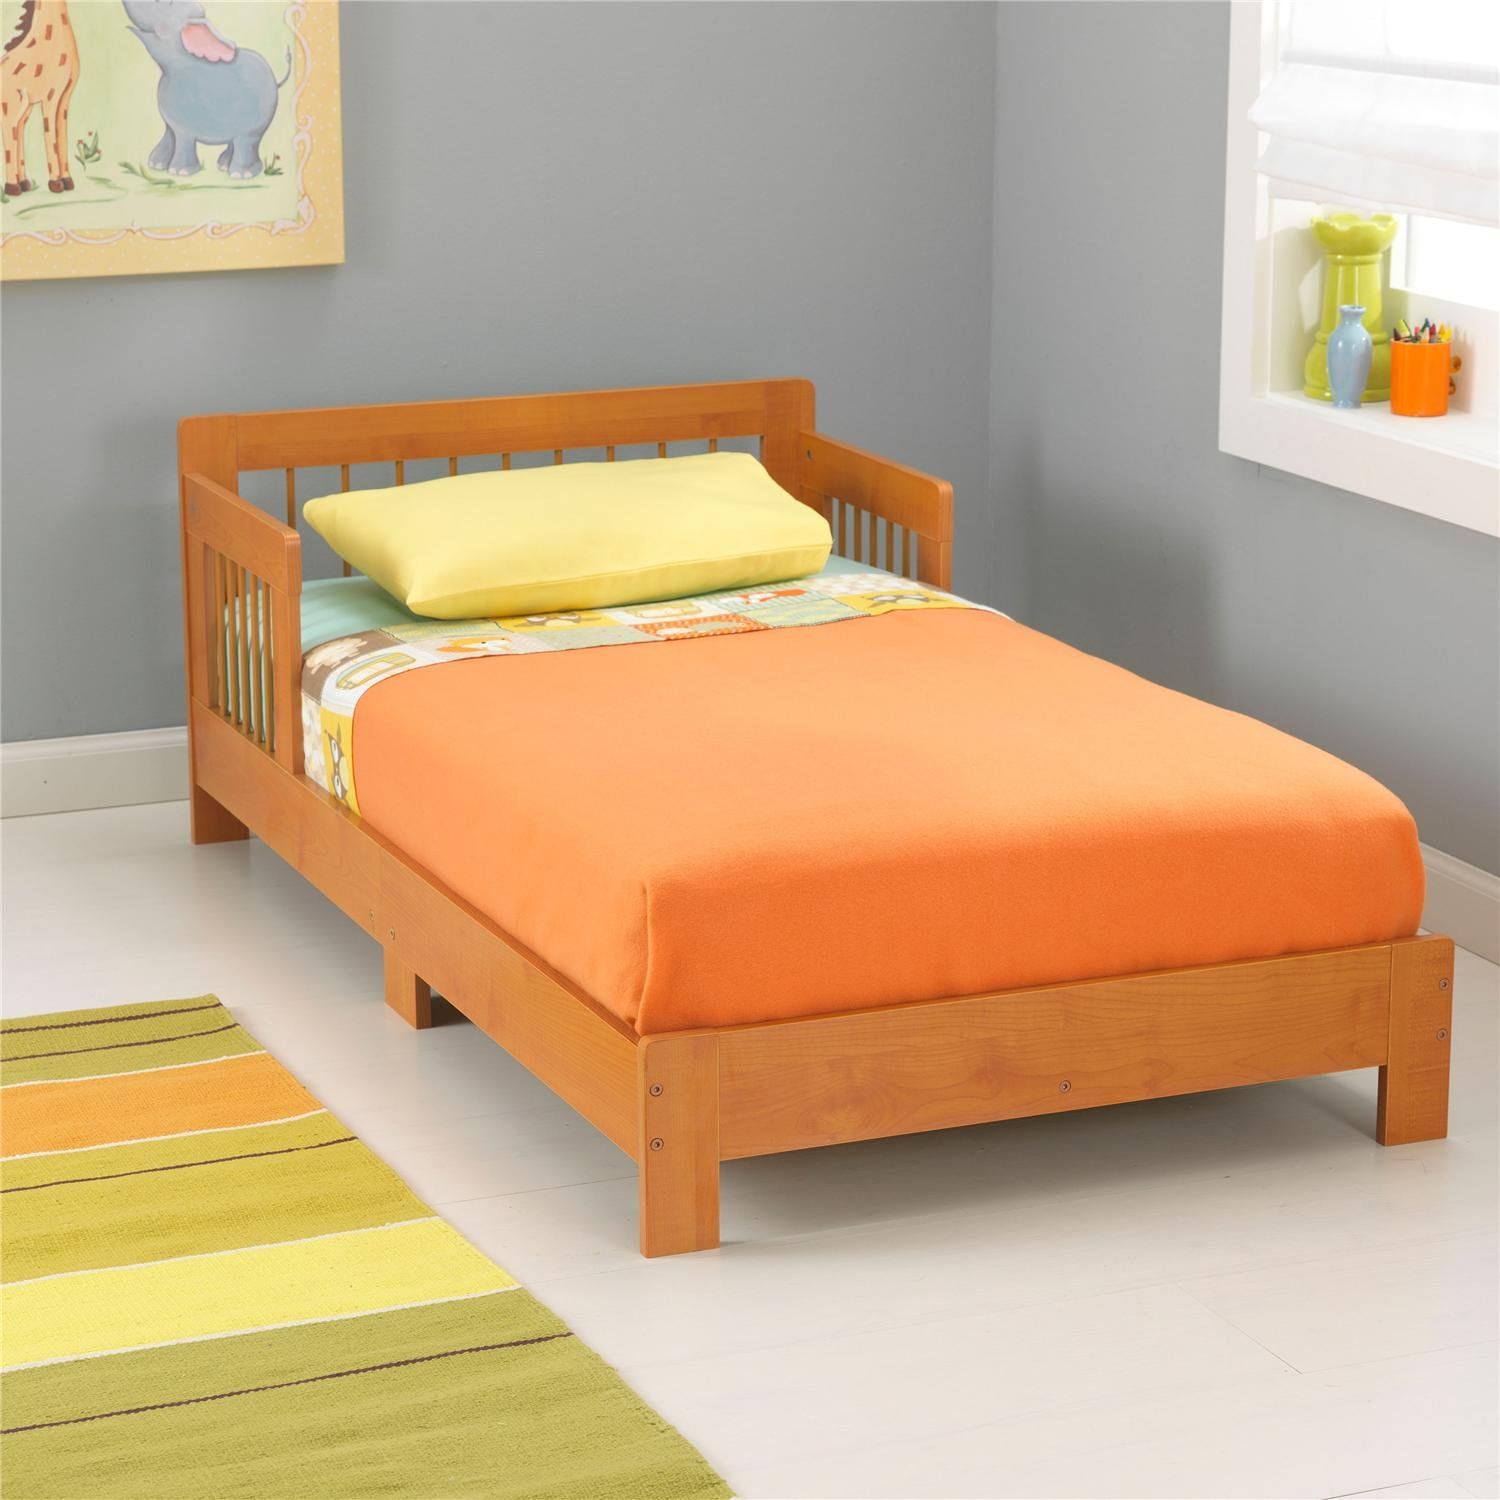 amazoncom kidkraft toddler houston bed espresso toys games - Yellow Bed Frame